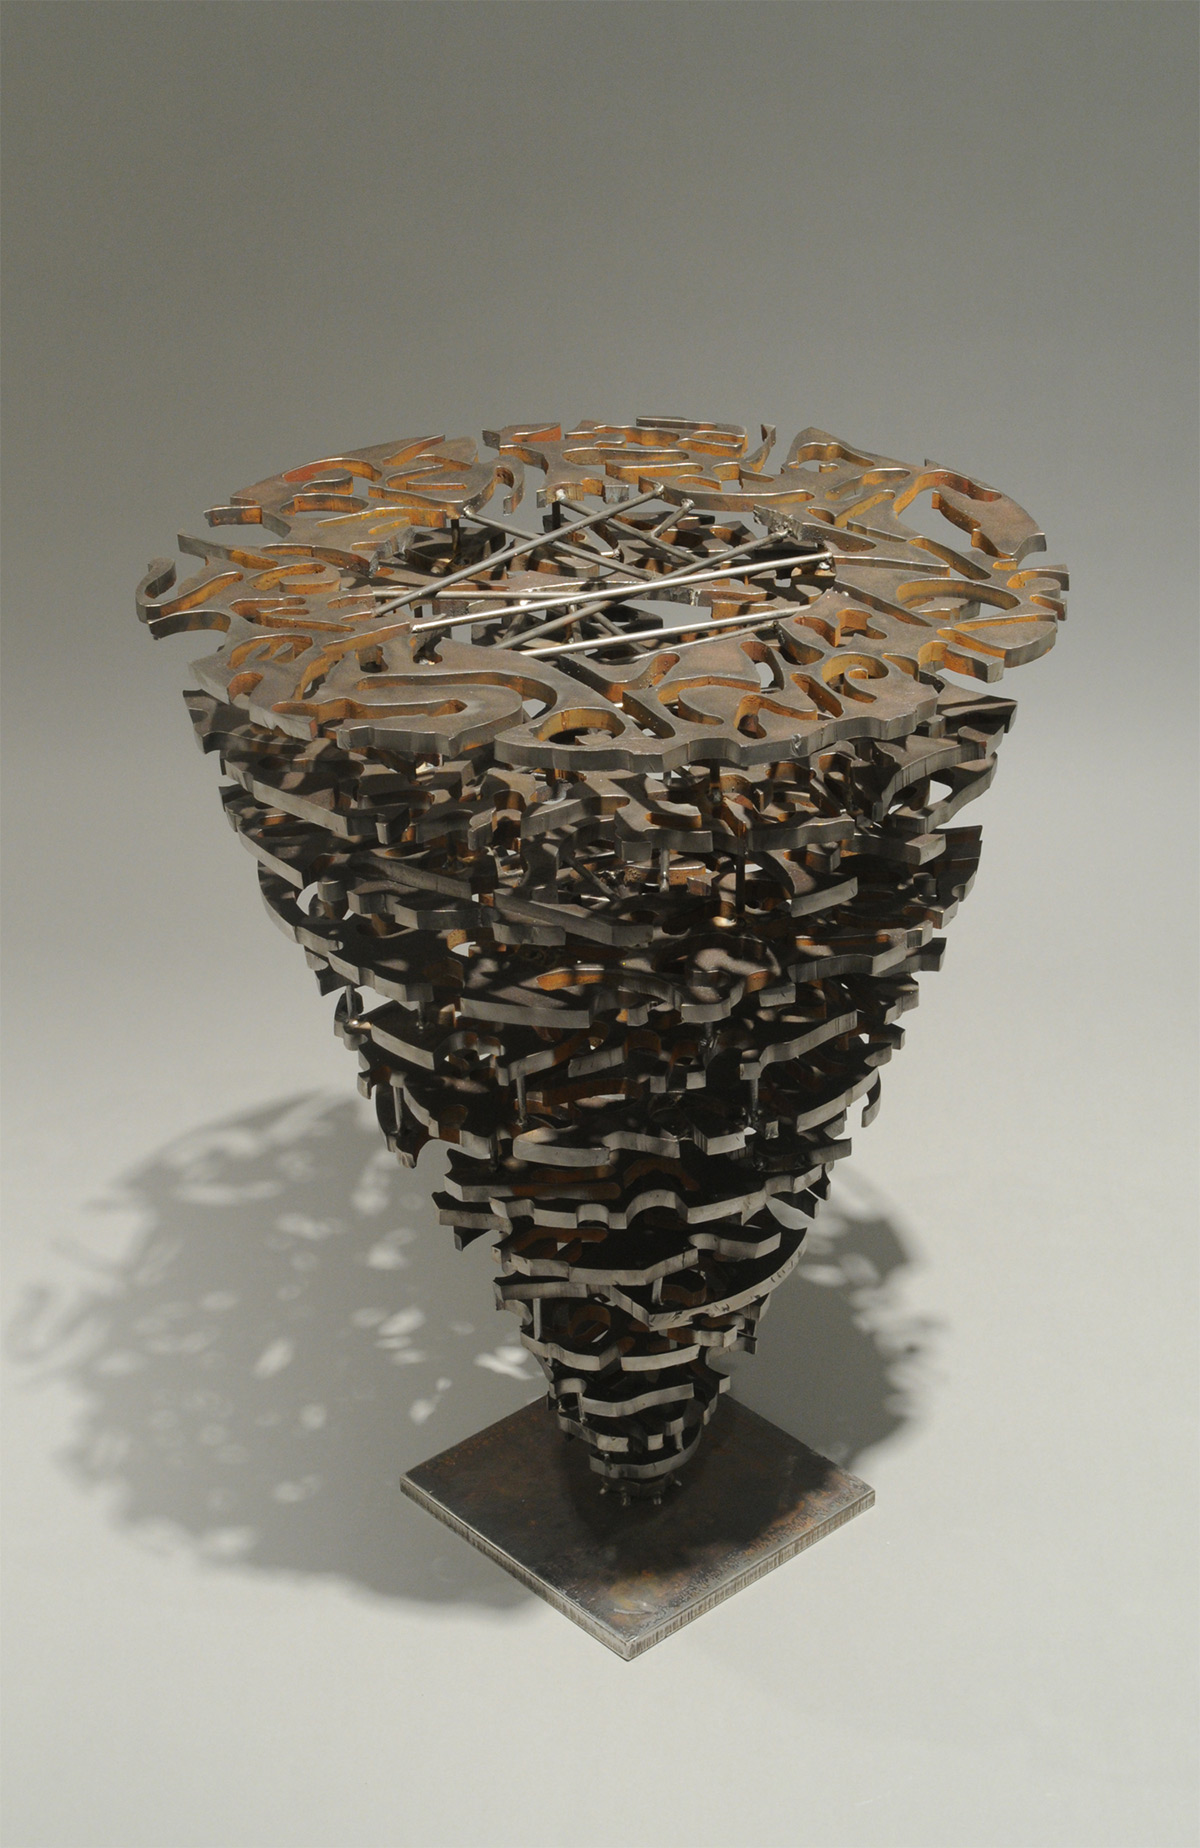 "Vessel – 2008 – 24 x 24 x 24 – Steel - <a href=""mailto:judbergeron@mac.com?subject=Inquire: Vessel – 2008 – 24 x 24 x 24 – Steel"">Inquire</a>"